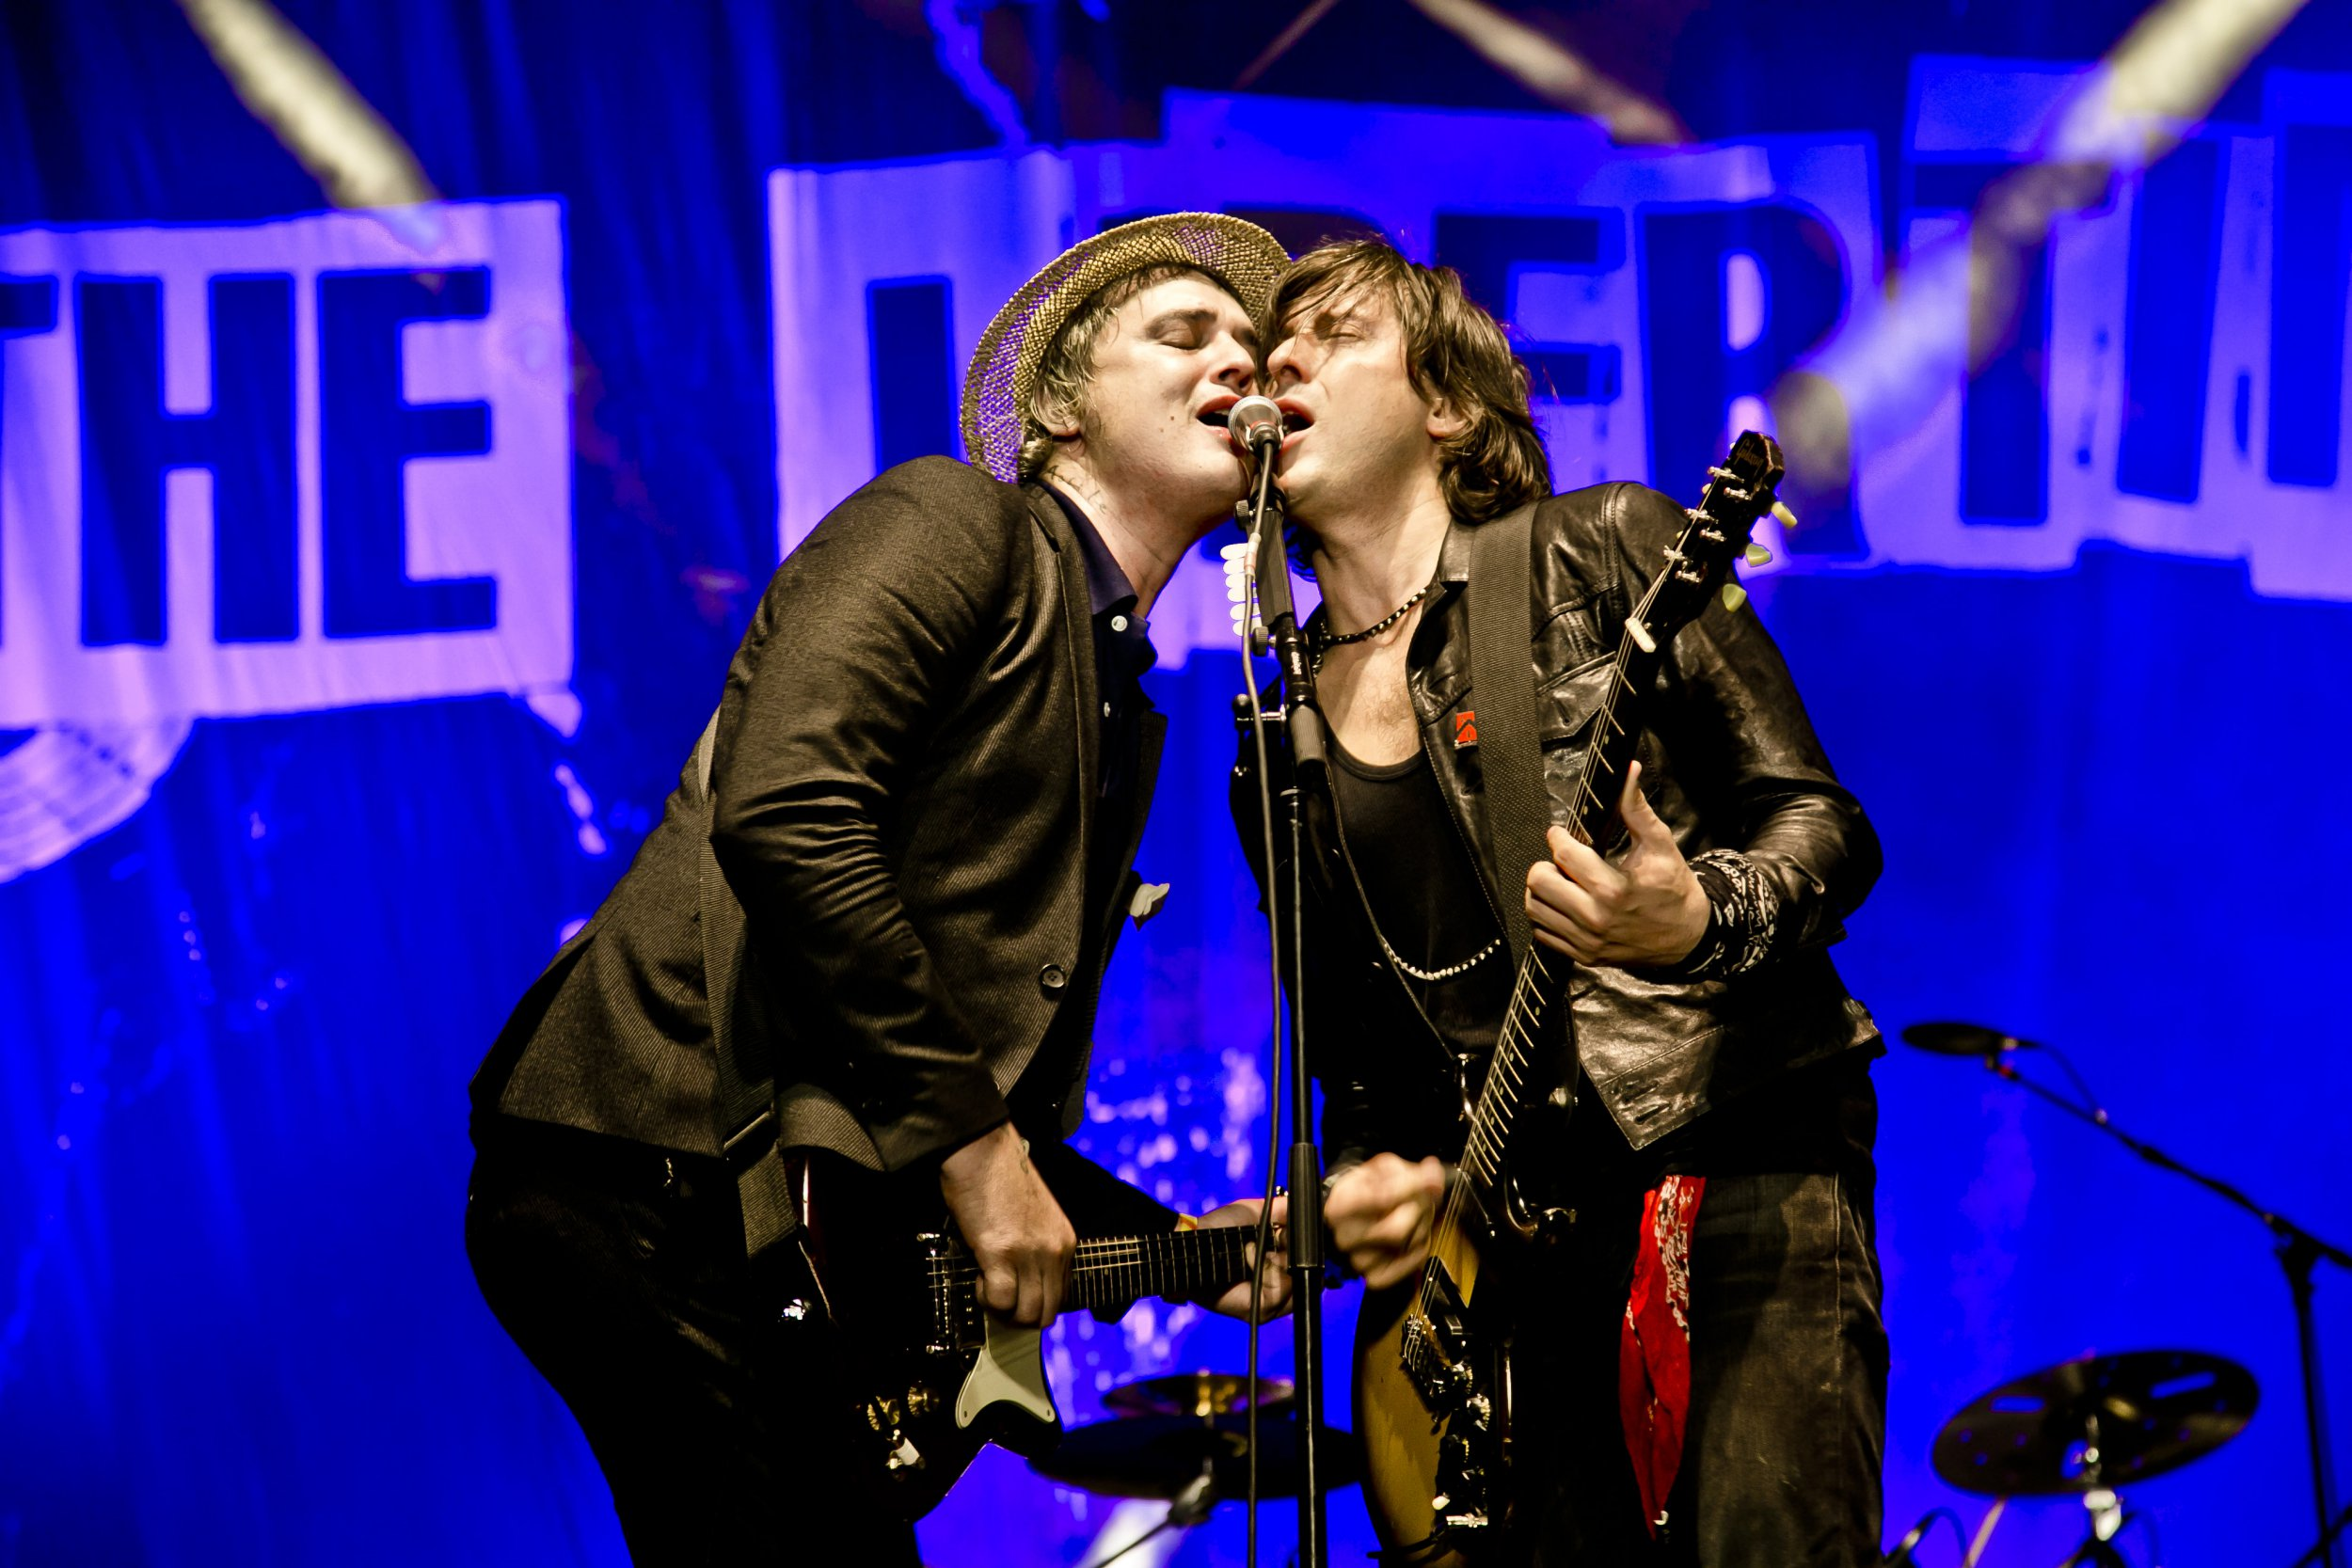 The Libertines' Carl Barat says 'we create something special when we're together' ahead of Palestine gig